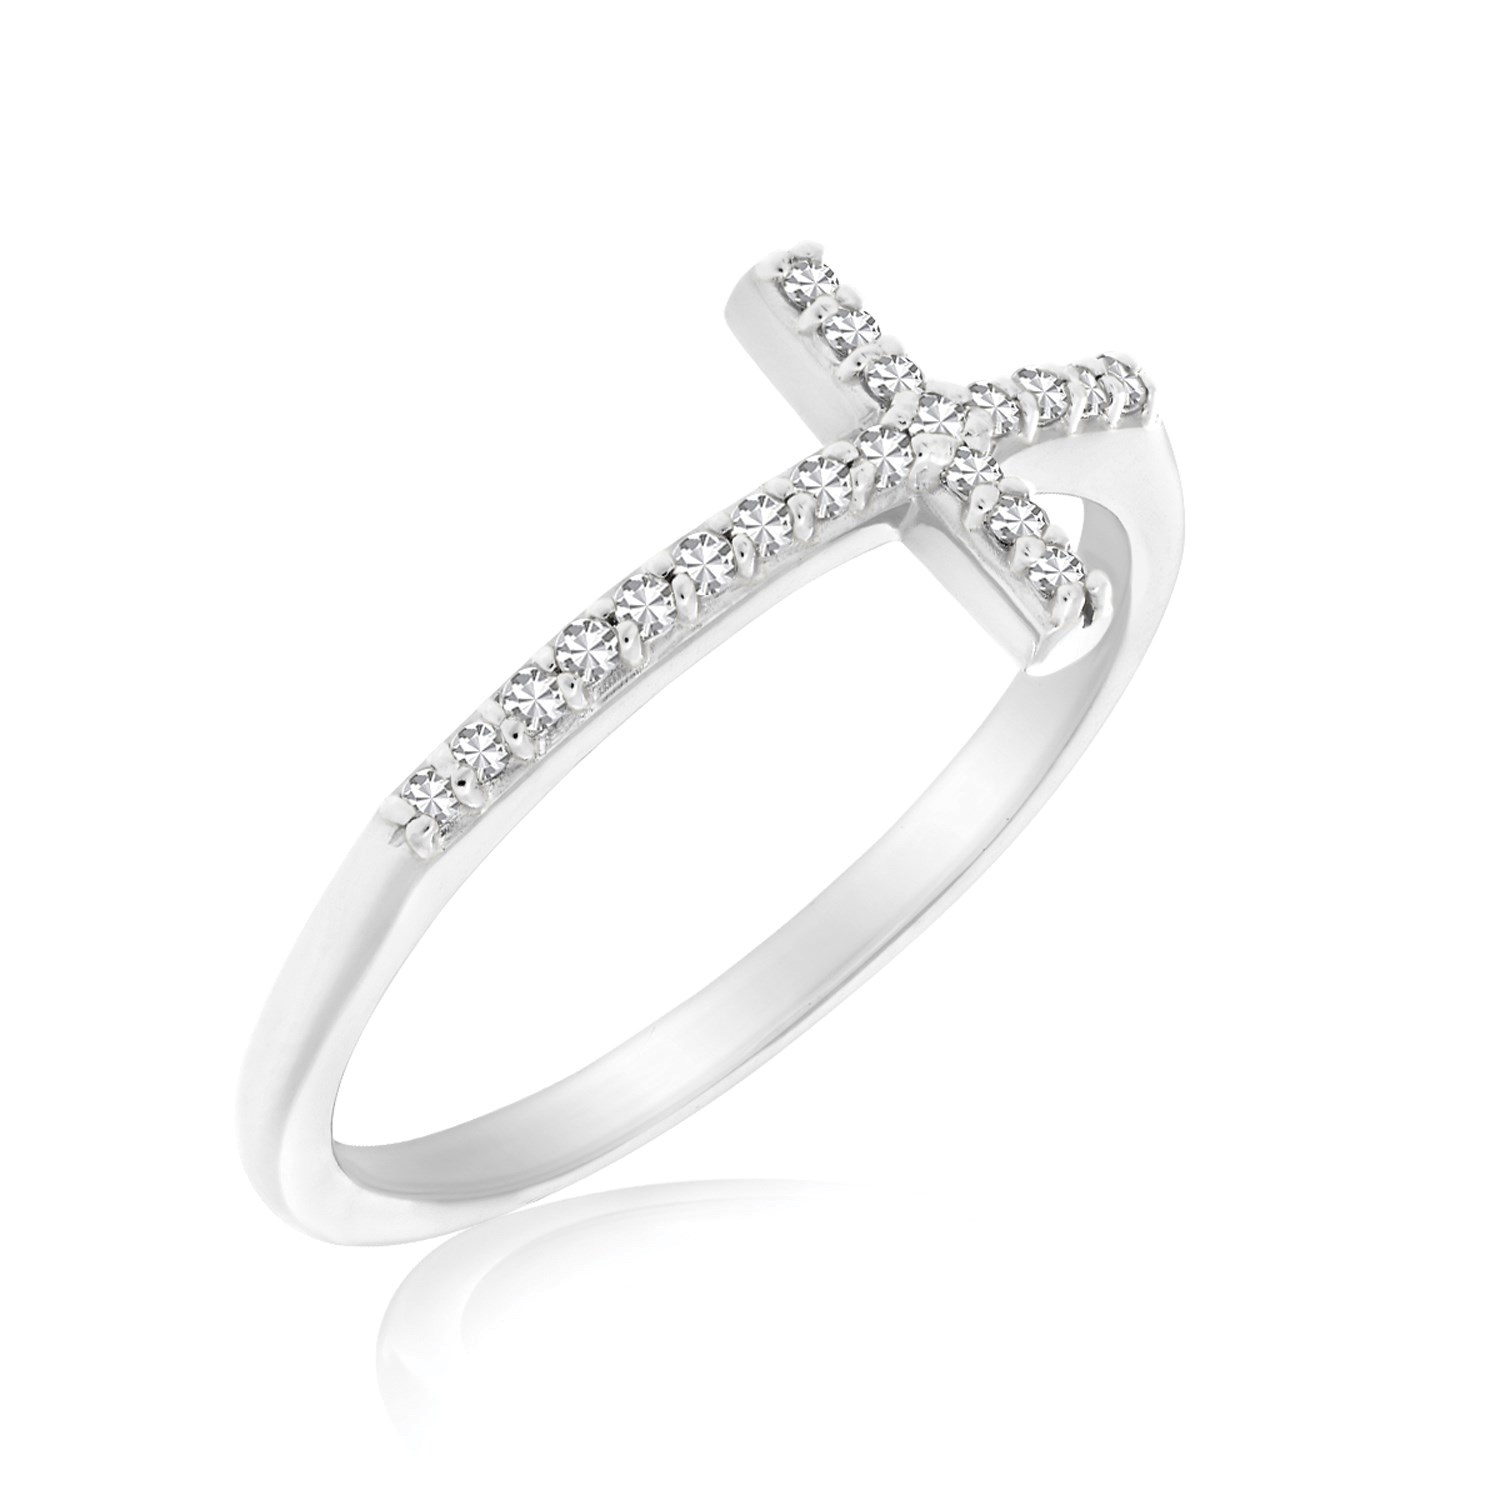 cfm accents celtic knot engagementdetails wedding diamond with ring cut band matching princess accent in engagement rings